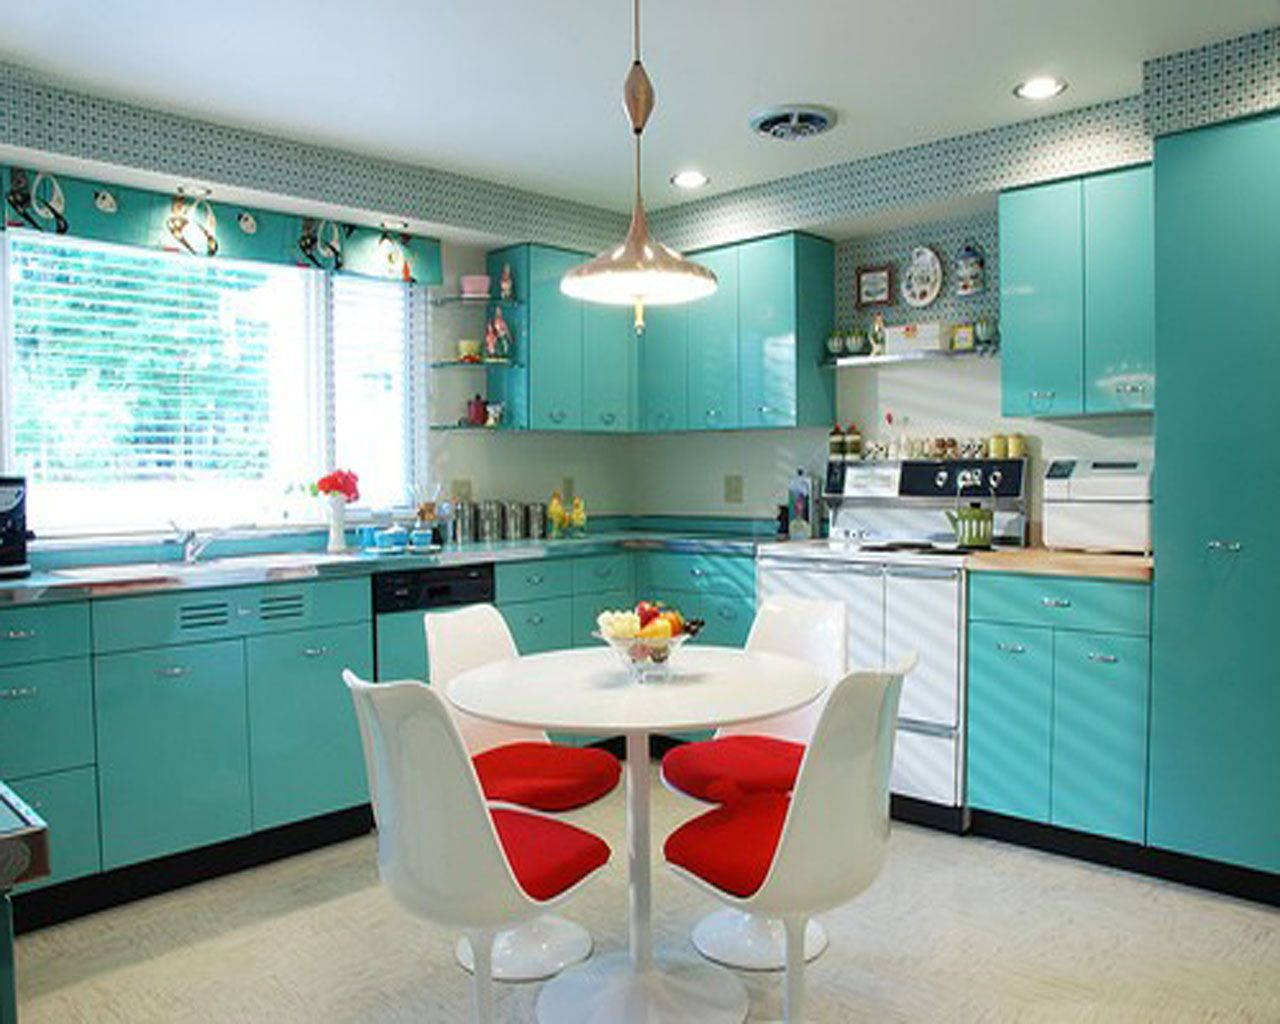 15 Favorite Ideas for Turquoise Kitchen Decor and Appliances ...